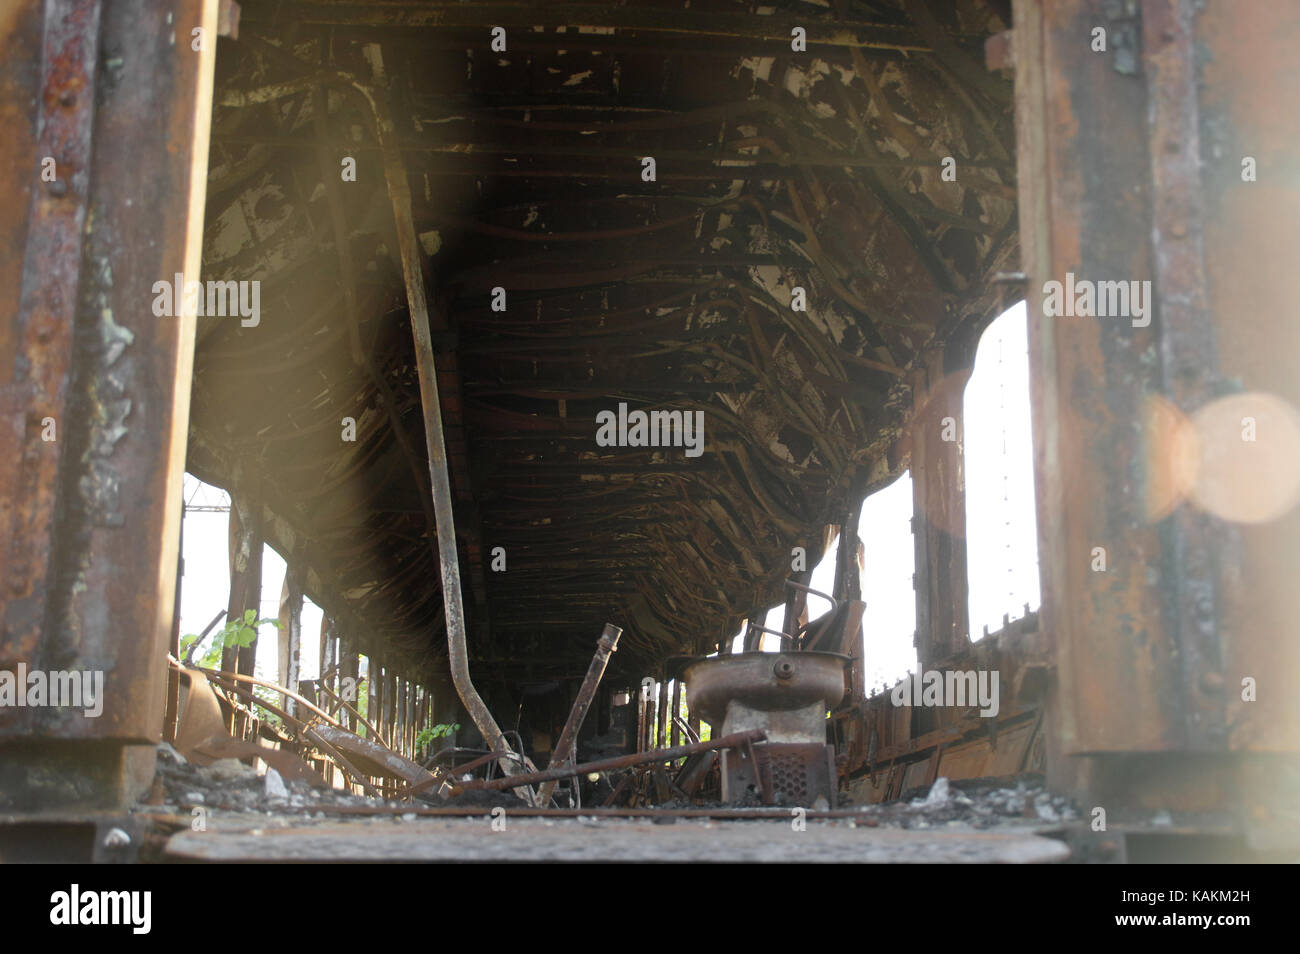 Rusty, burned and destroyed old railway wagon - Stock Image